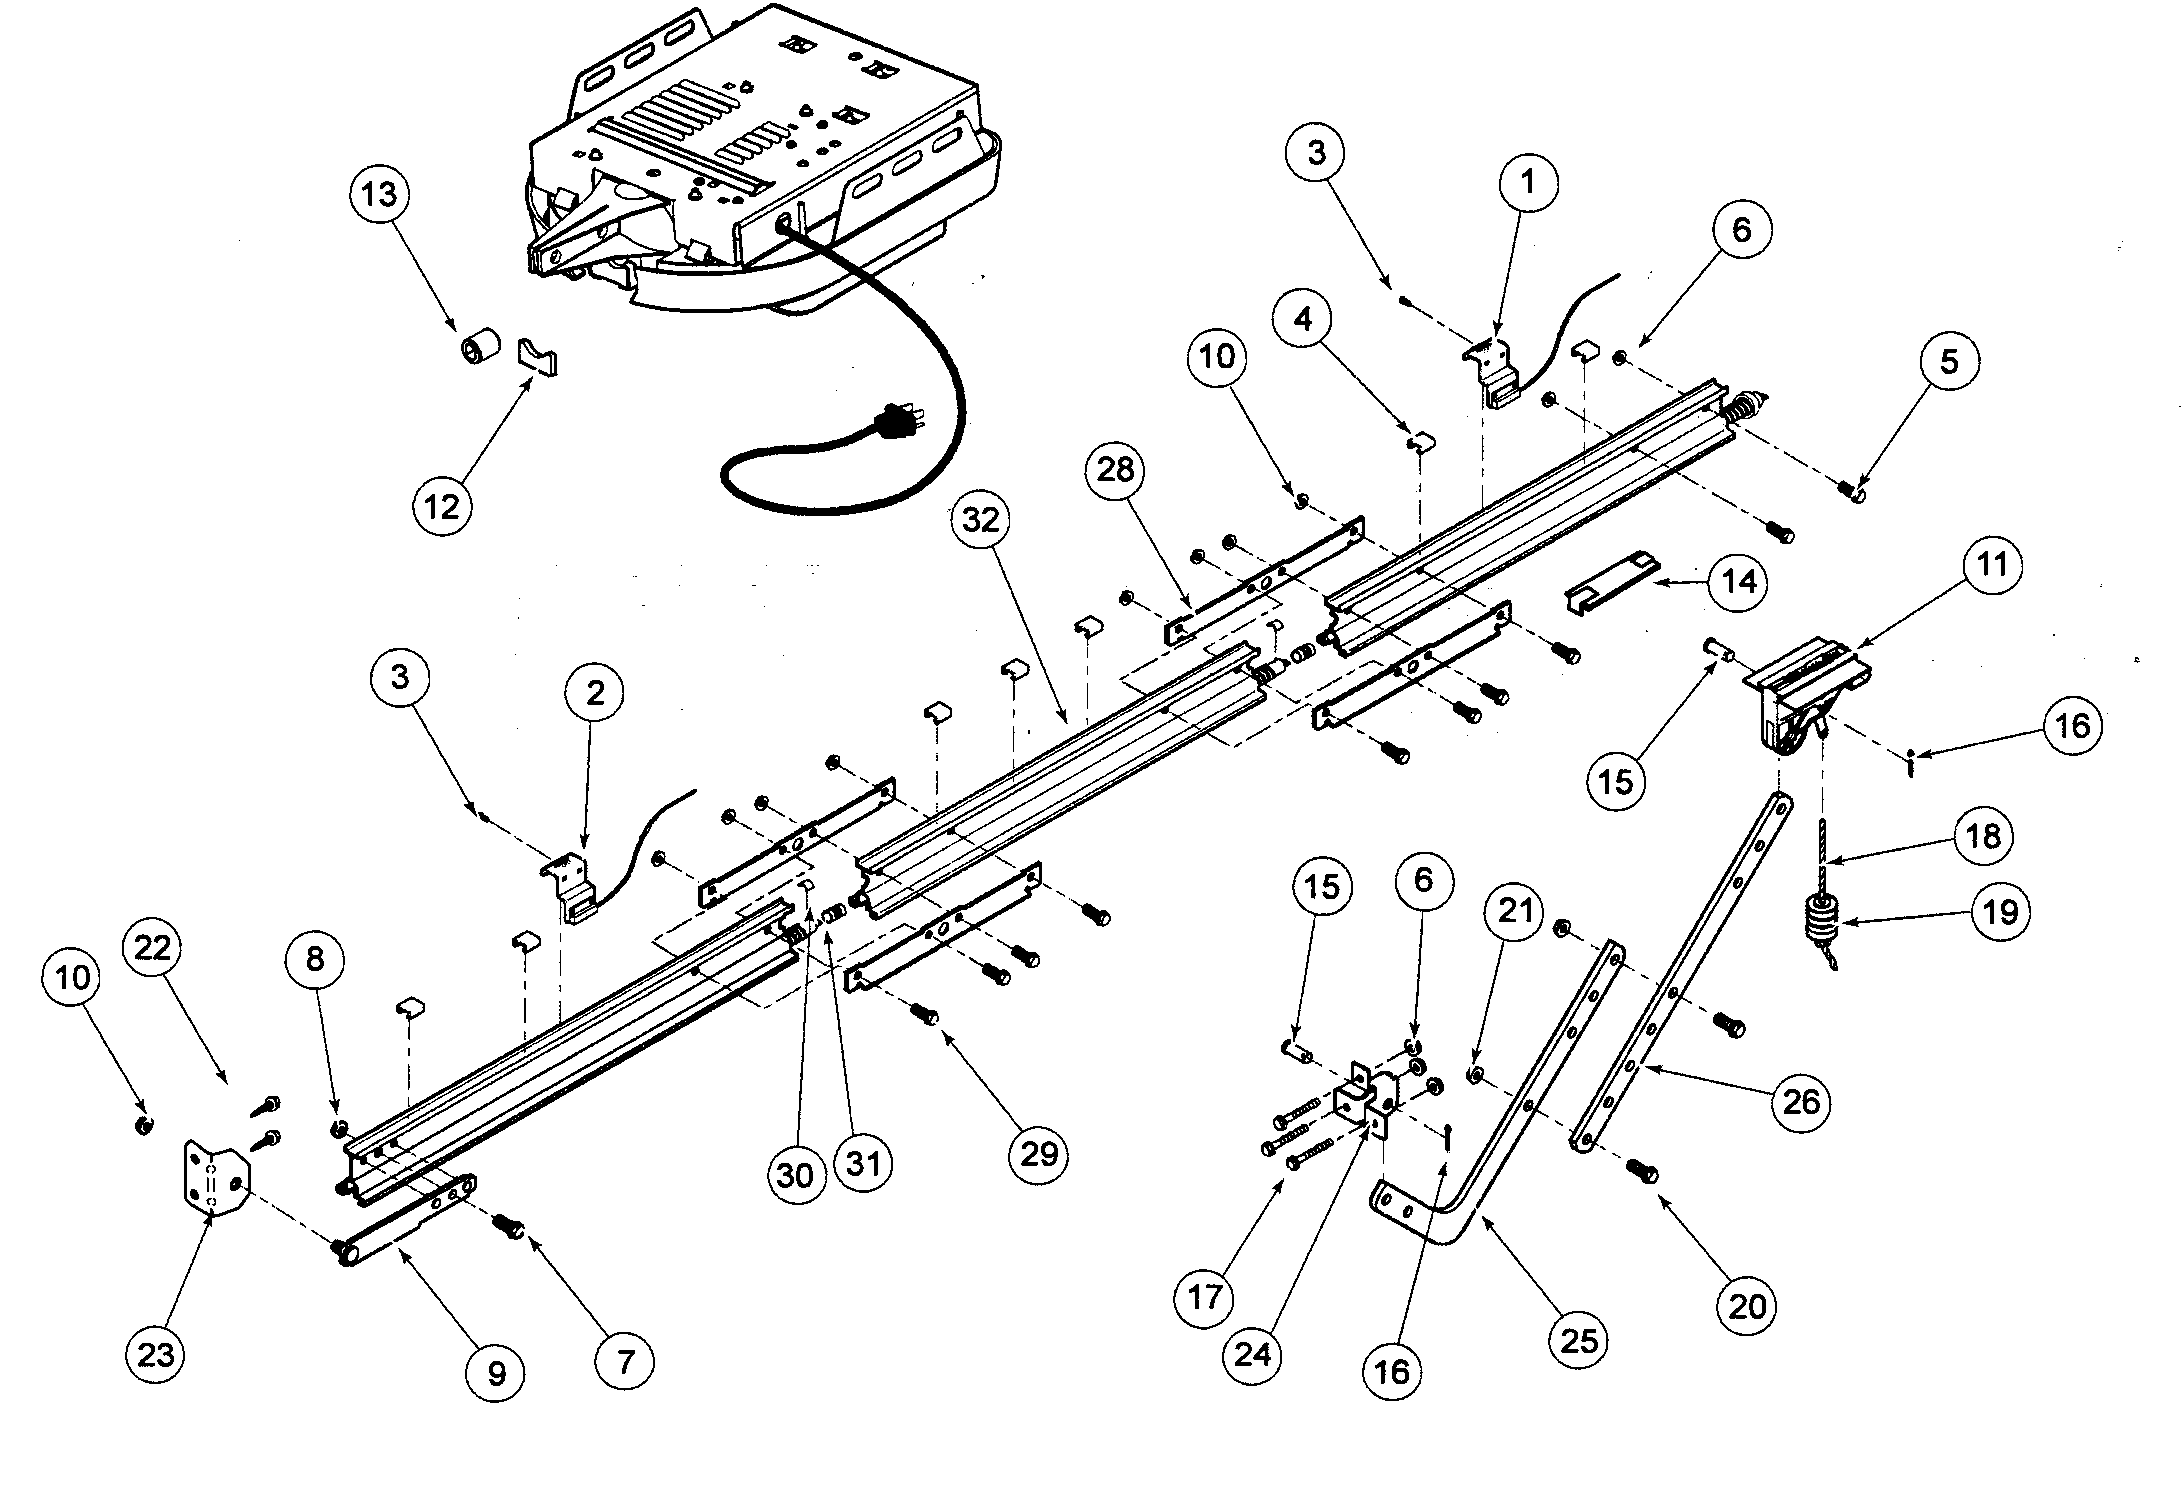 RAIL ASSY Diagram & Parts List for Model ISD995 Genie